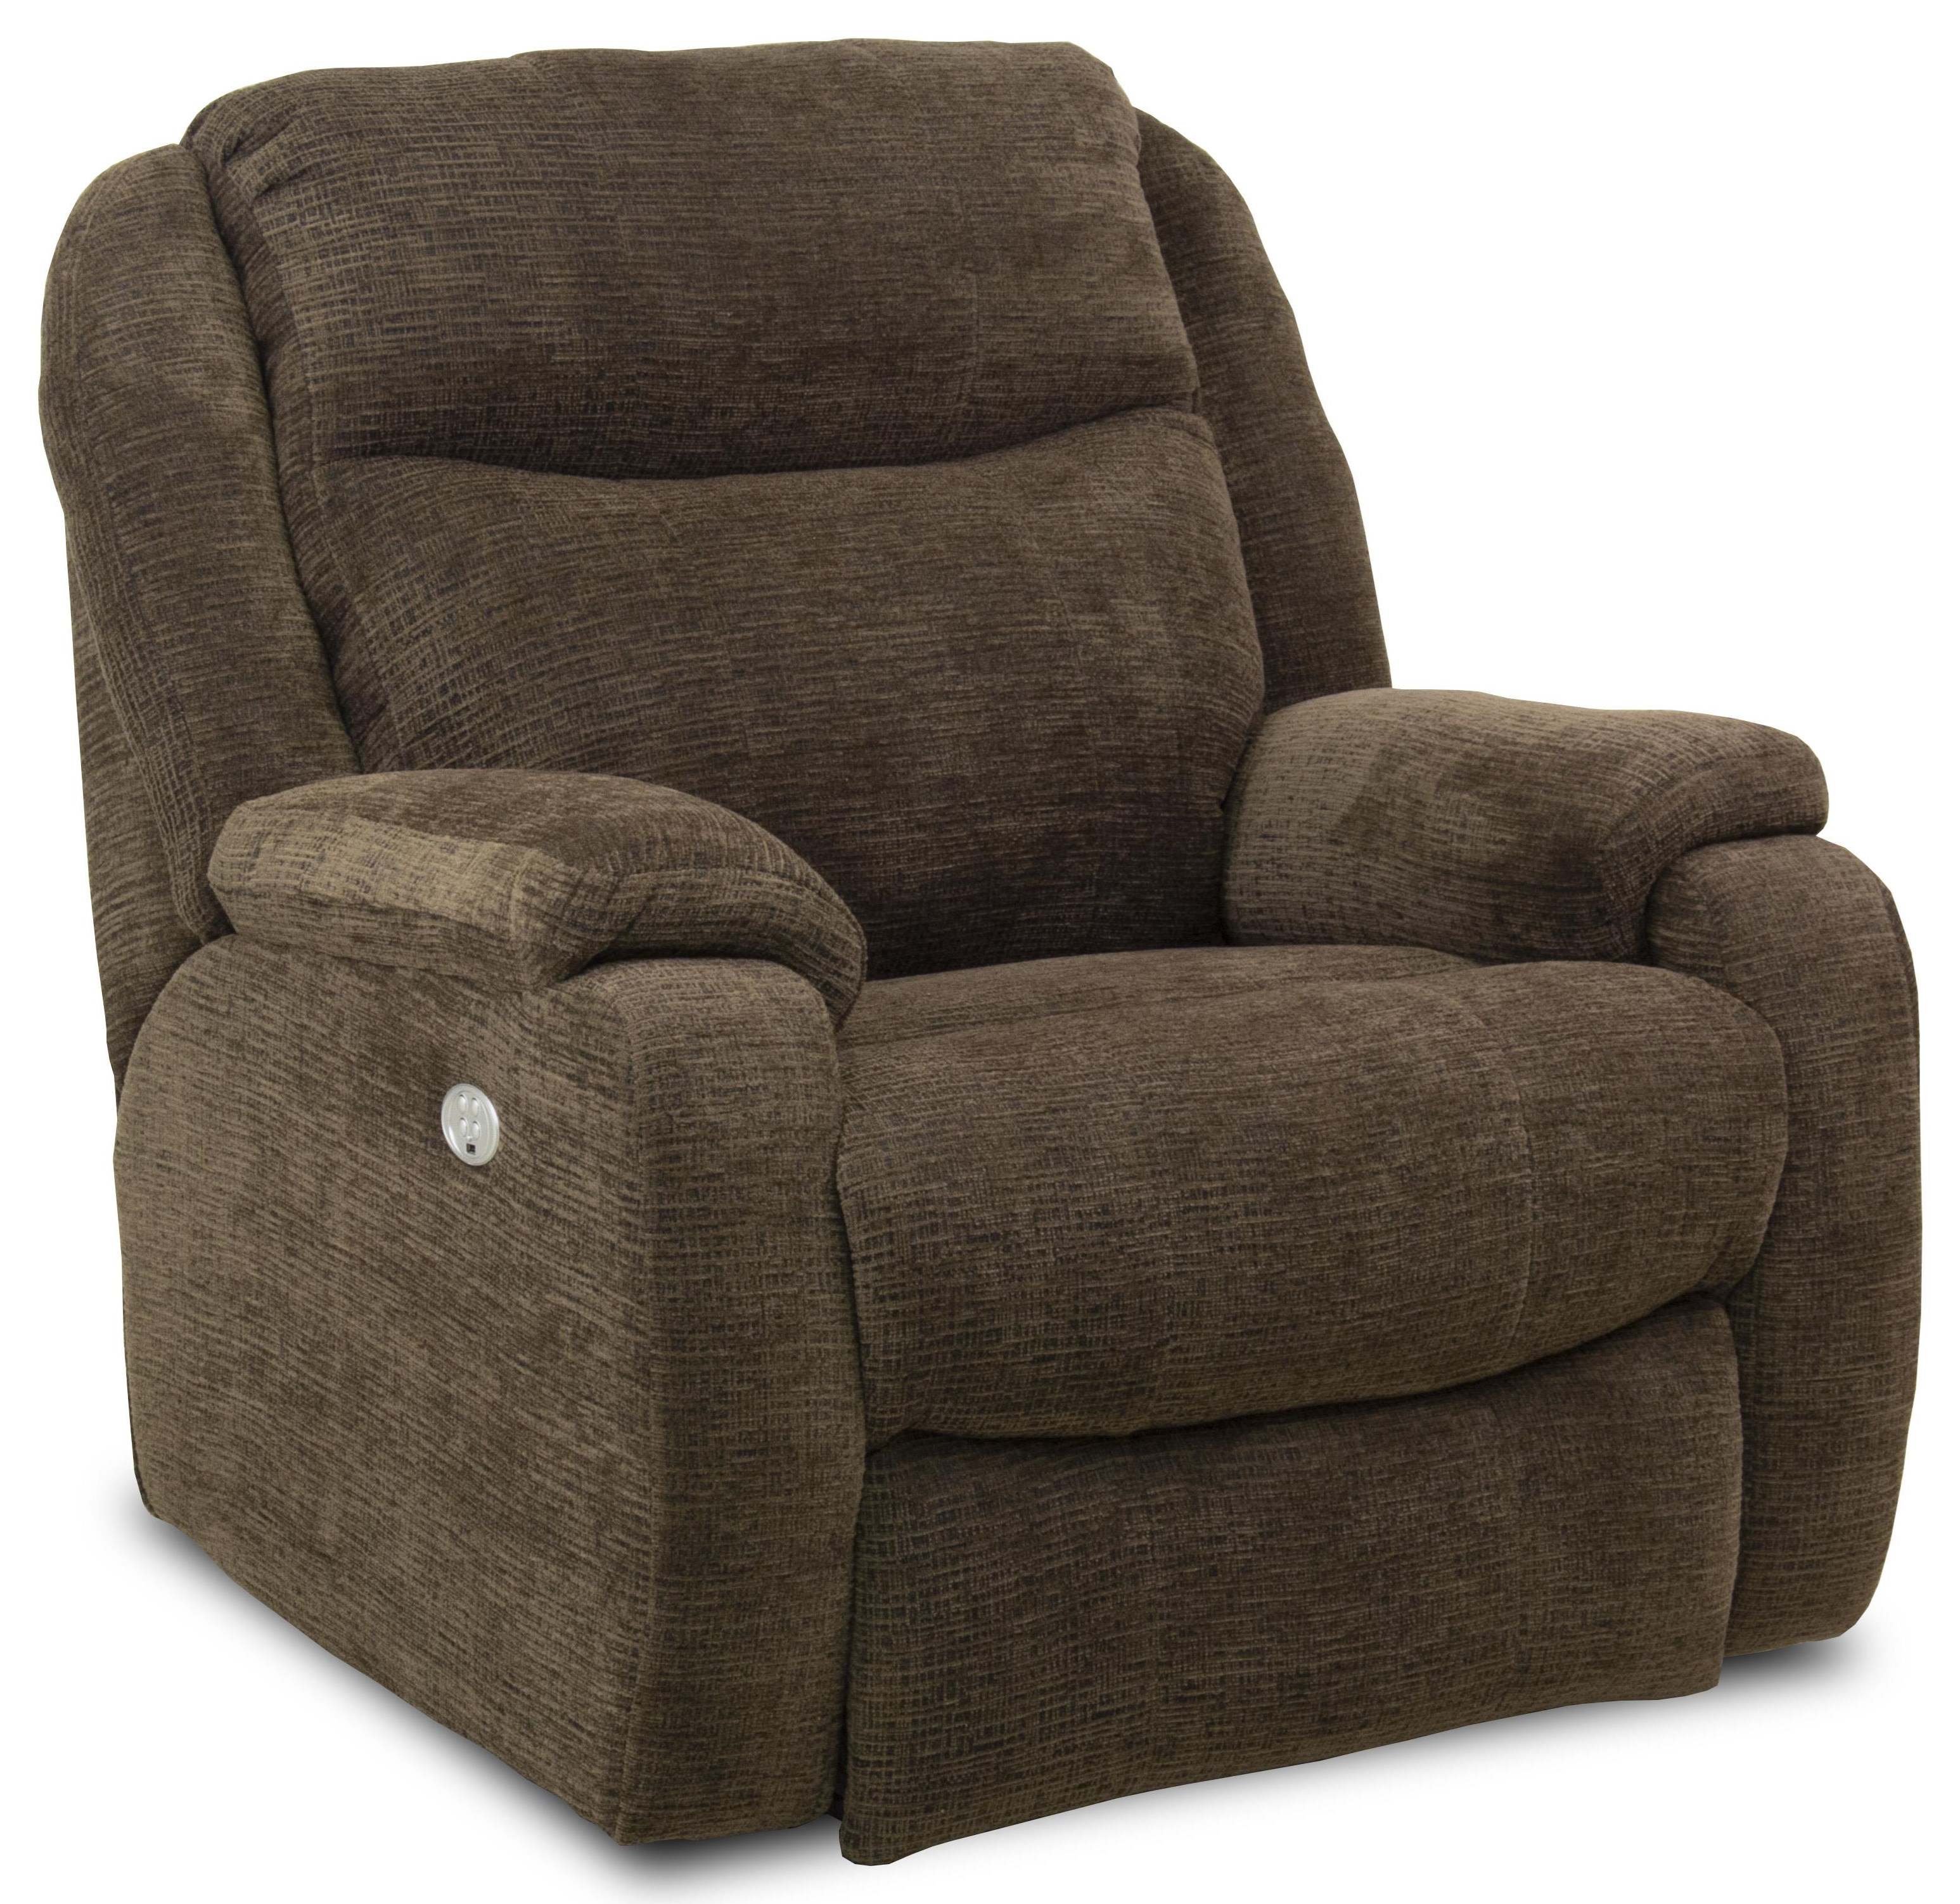 Southern Motion Recliners Hercules Big Man S Power Recliner Ruby